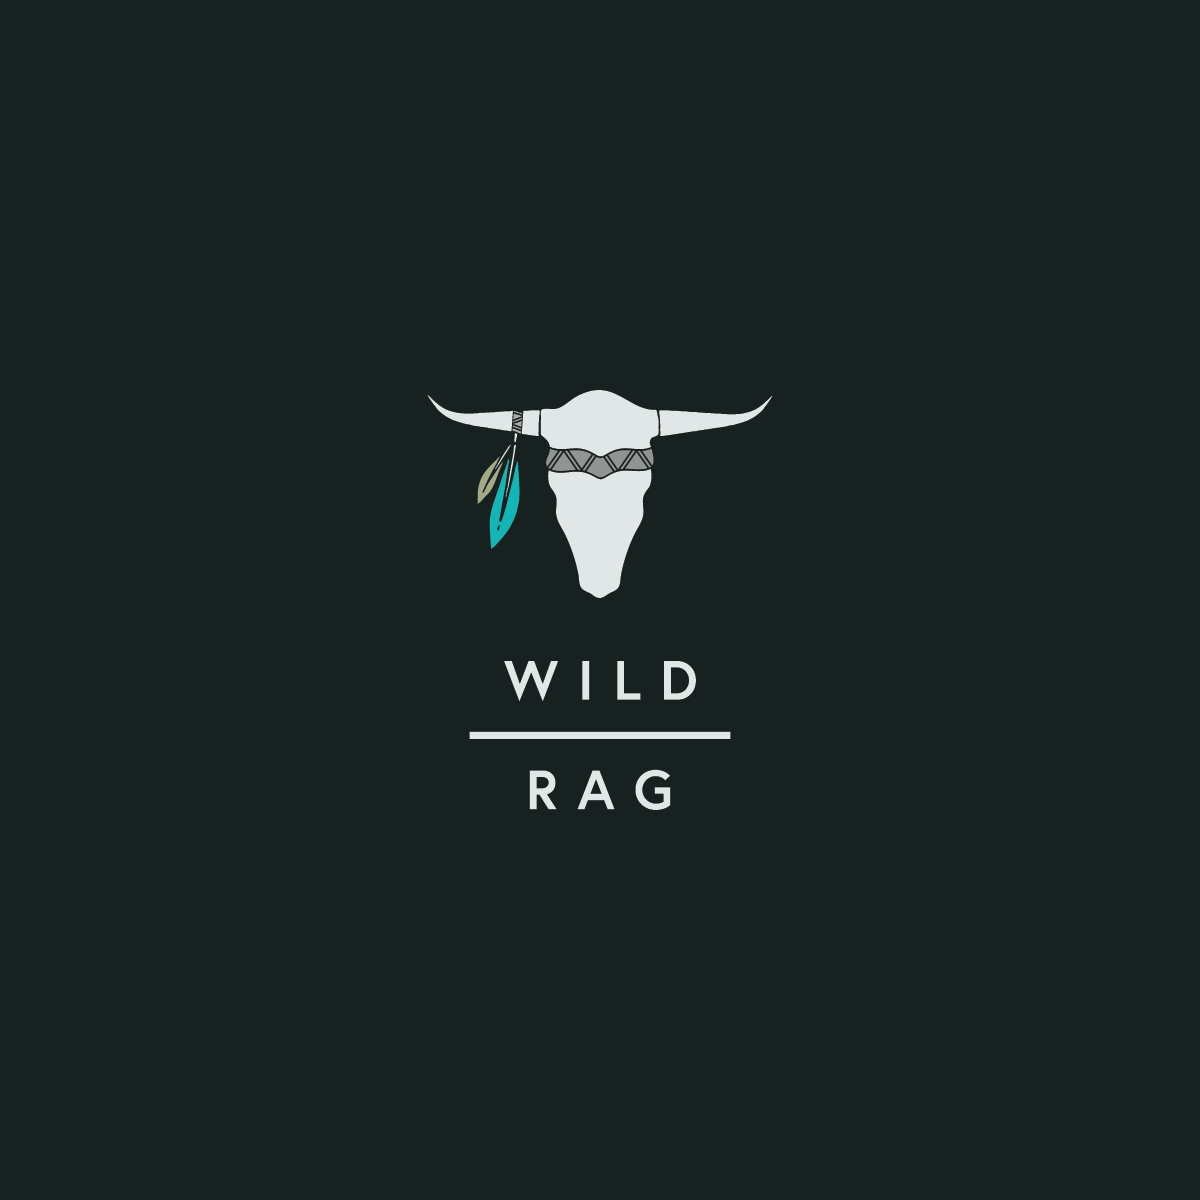 Alternate logo variation for Wild Rag Boutique by Rachel Cottrell of The Bloom Design Company | #graphicdesign #logodesign #branddesign #profilepicture #westernfashion #bohowesternfashion #onlineboutique #fashionboutique #boutiquebranding